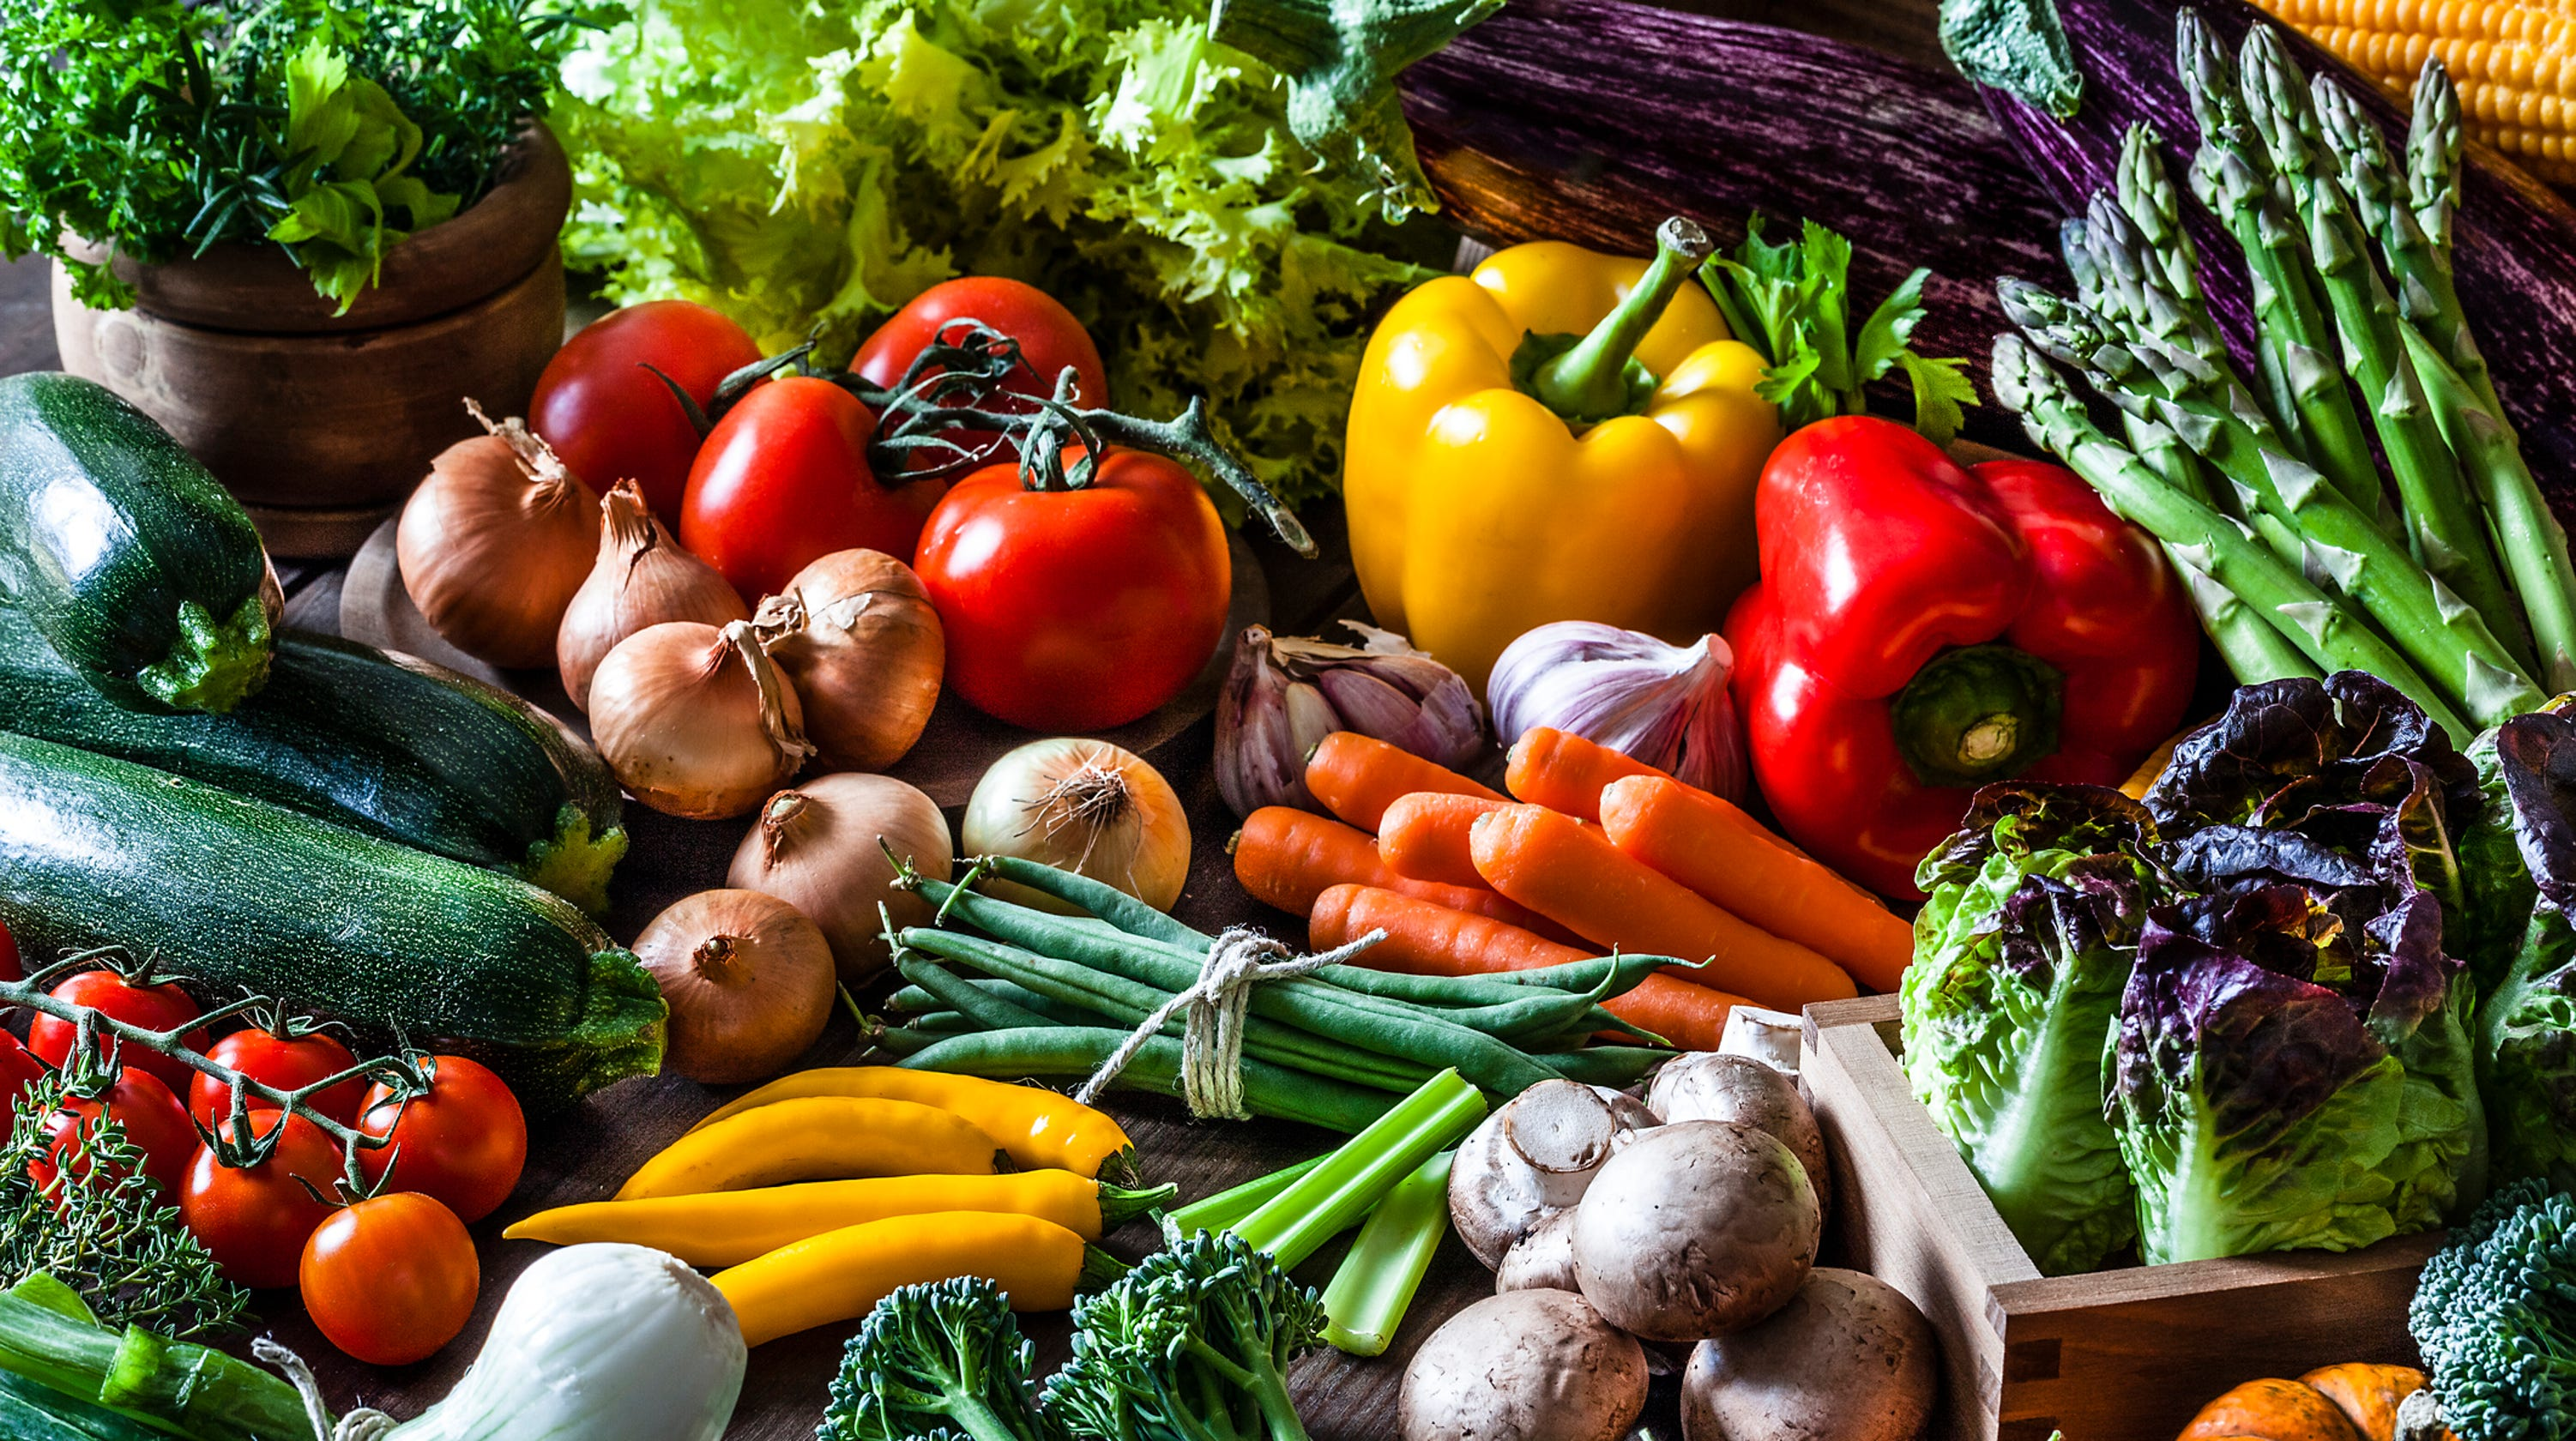 Eating organic food may prevent cancer, French study suggests